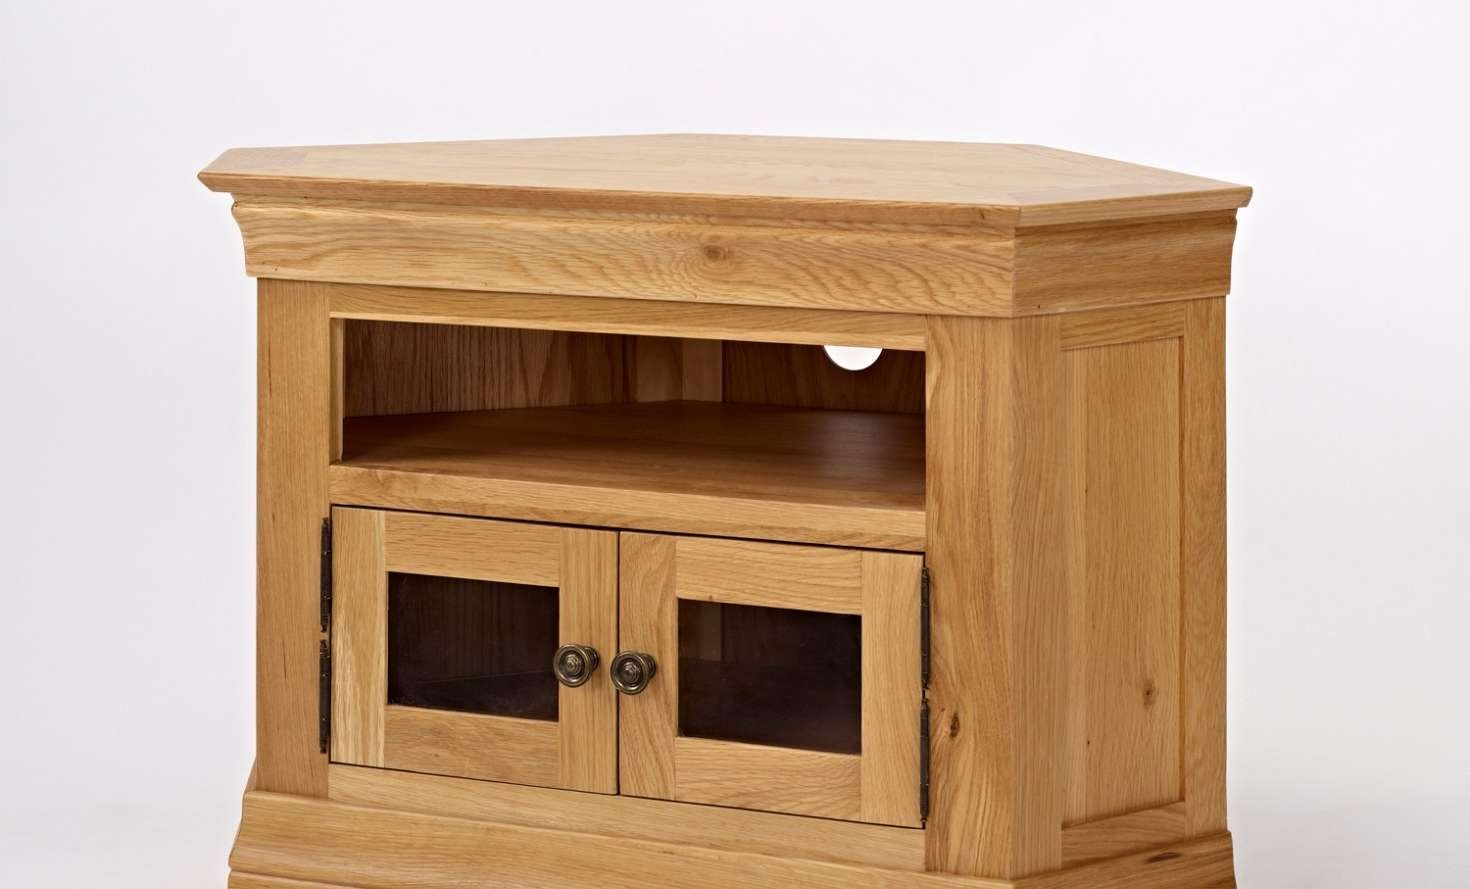 Tv : Awesome French Country Tv Cabinets Beautiful White Black Wood Throughout French Country Tv Cabinets (View 14 of 20)